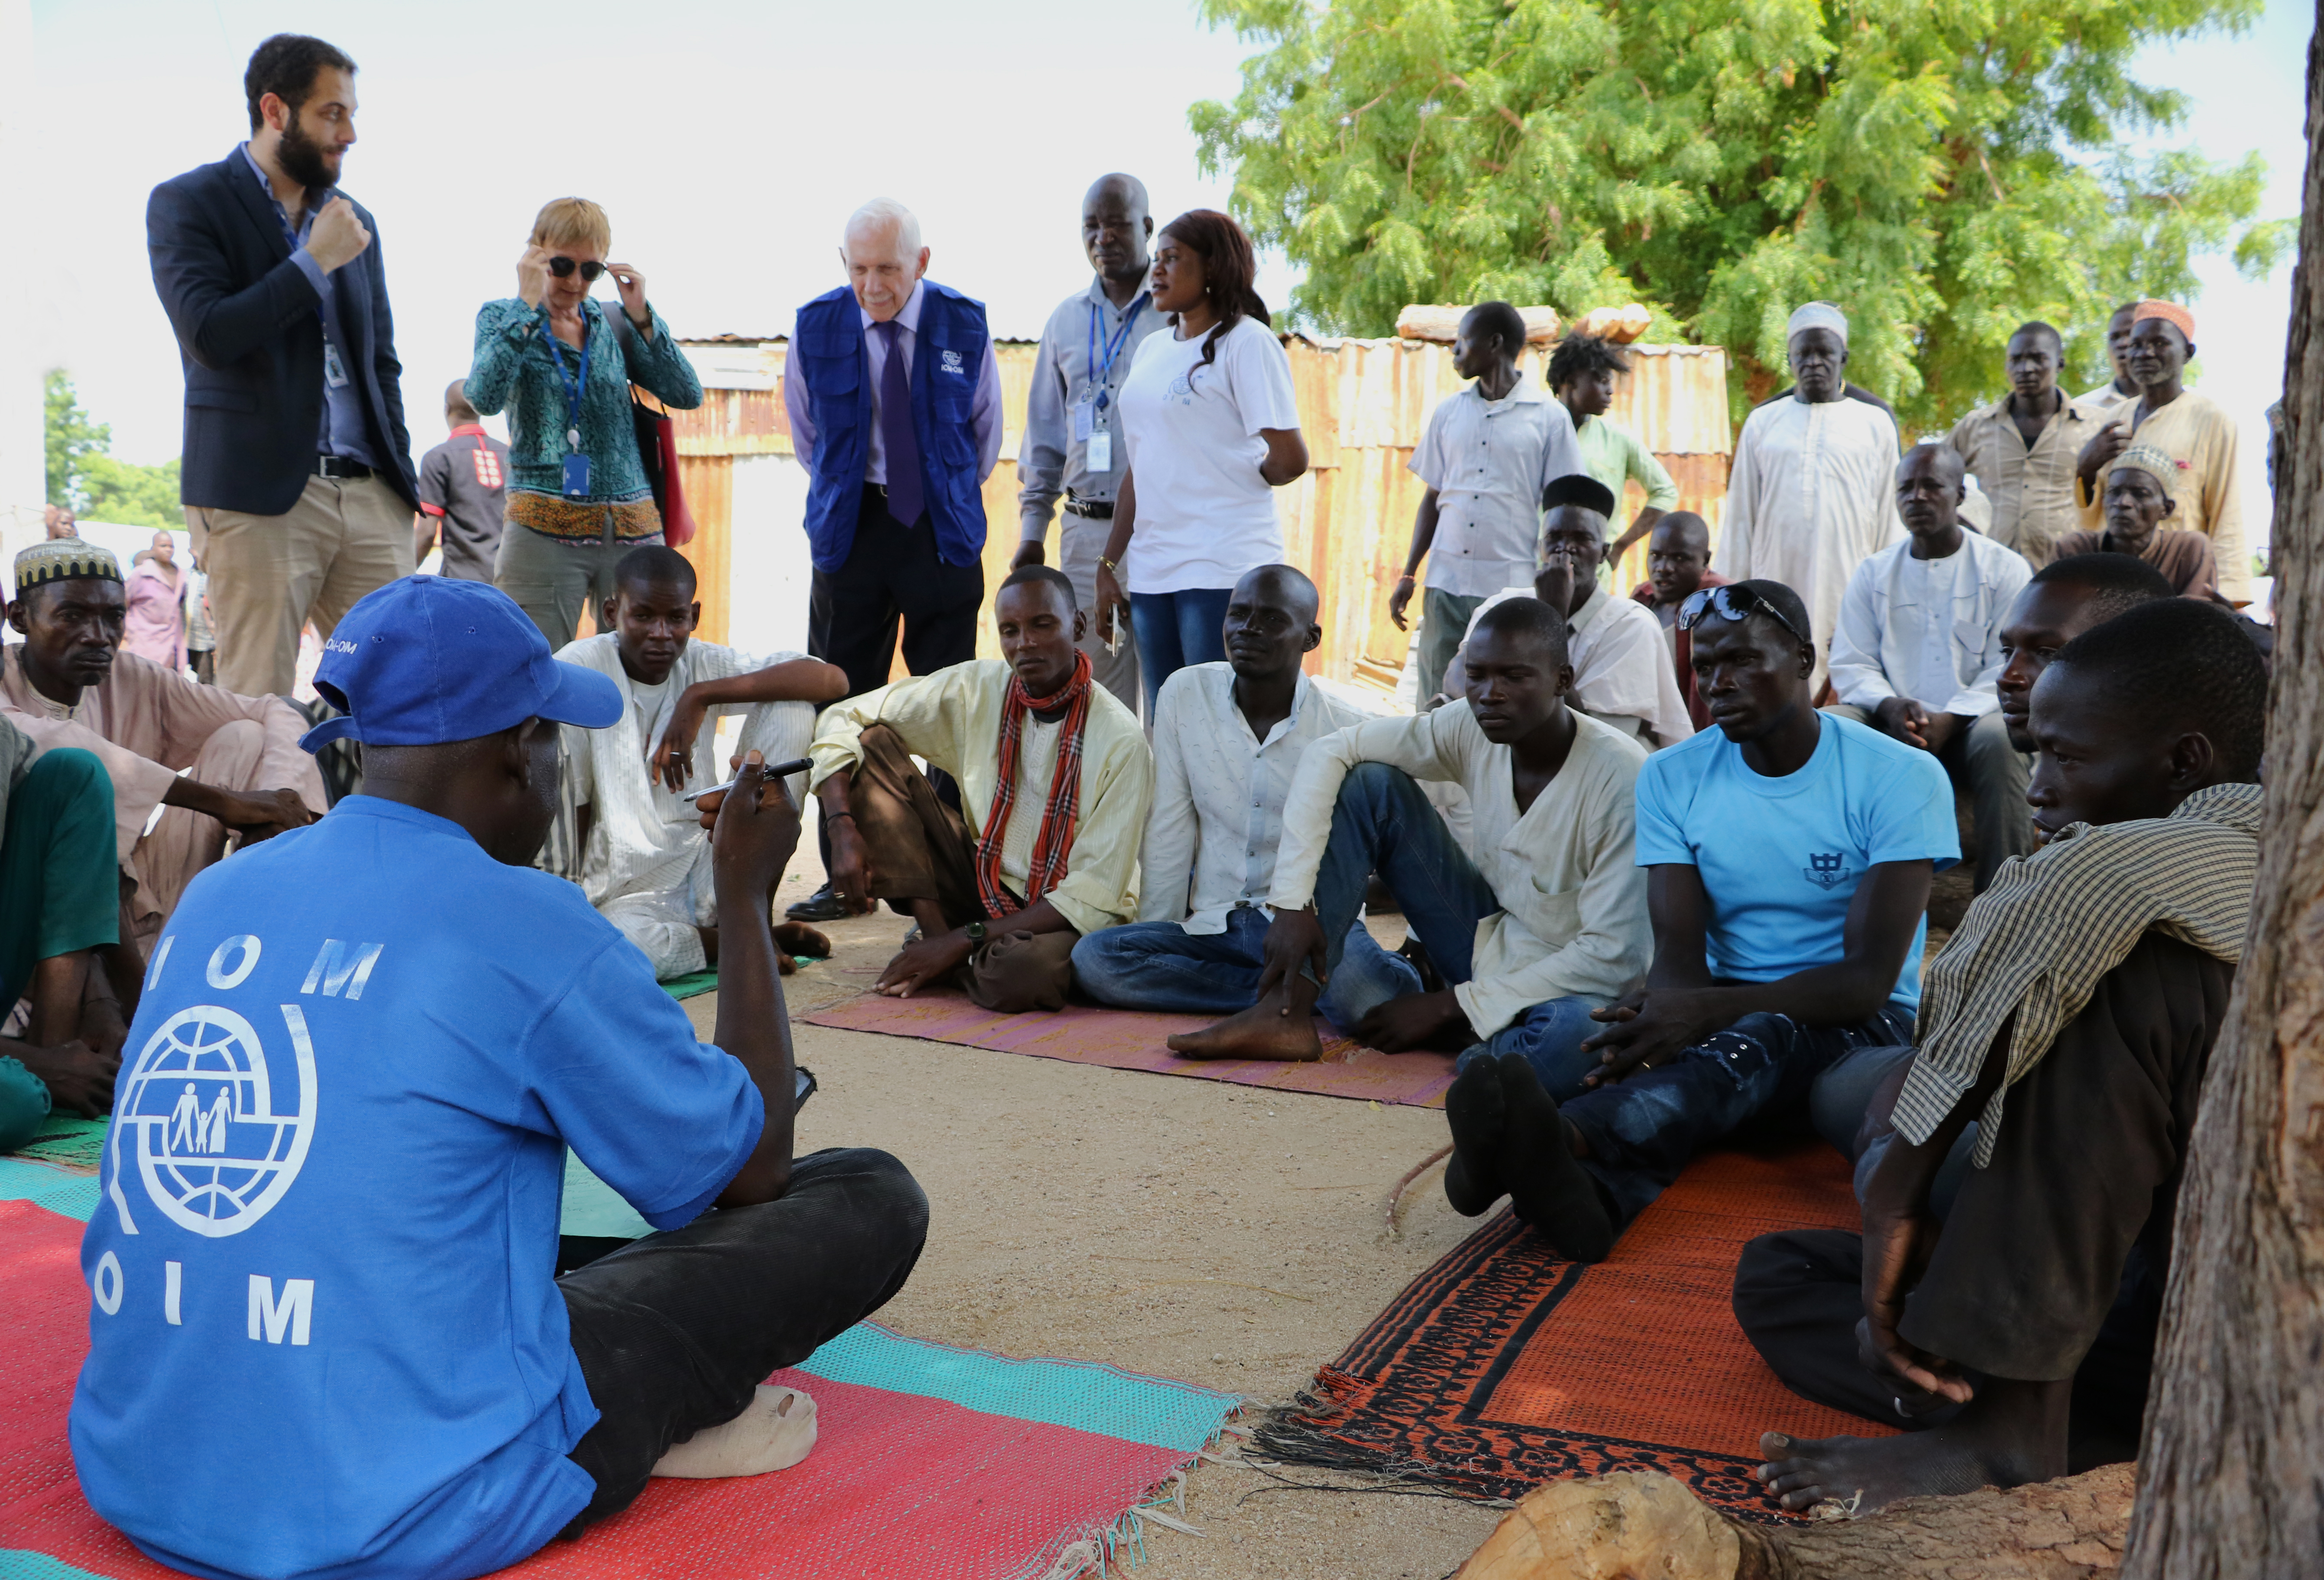 IOM Director General William Lacy Swing spent three days meeting with some of the internally displaced at camps and in communities in the hardest hit areas of Borno state, the epicentre of the conflict. IOM's emergency response is based in Maiduguri, the capital of Borno and the birthplace of Boko Haram.  Photo: Julia Burpee / UN Migration Agency (IOM) 2017